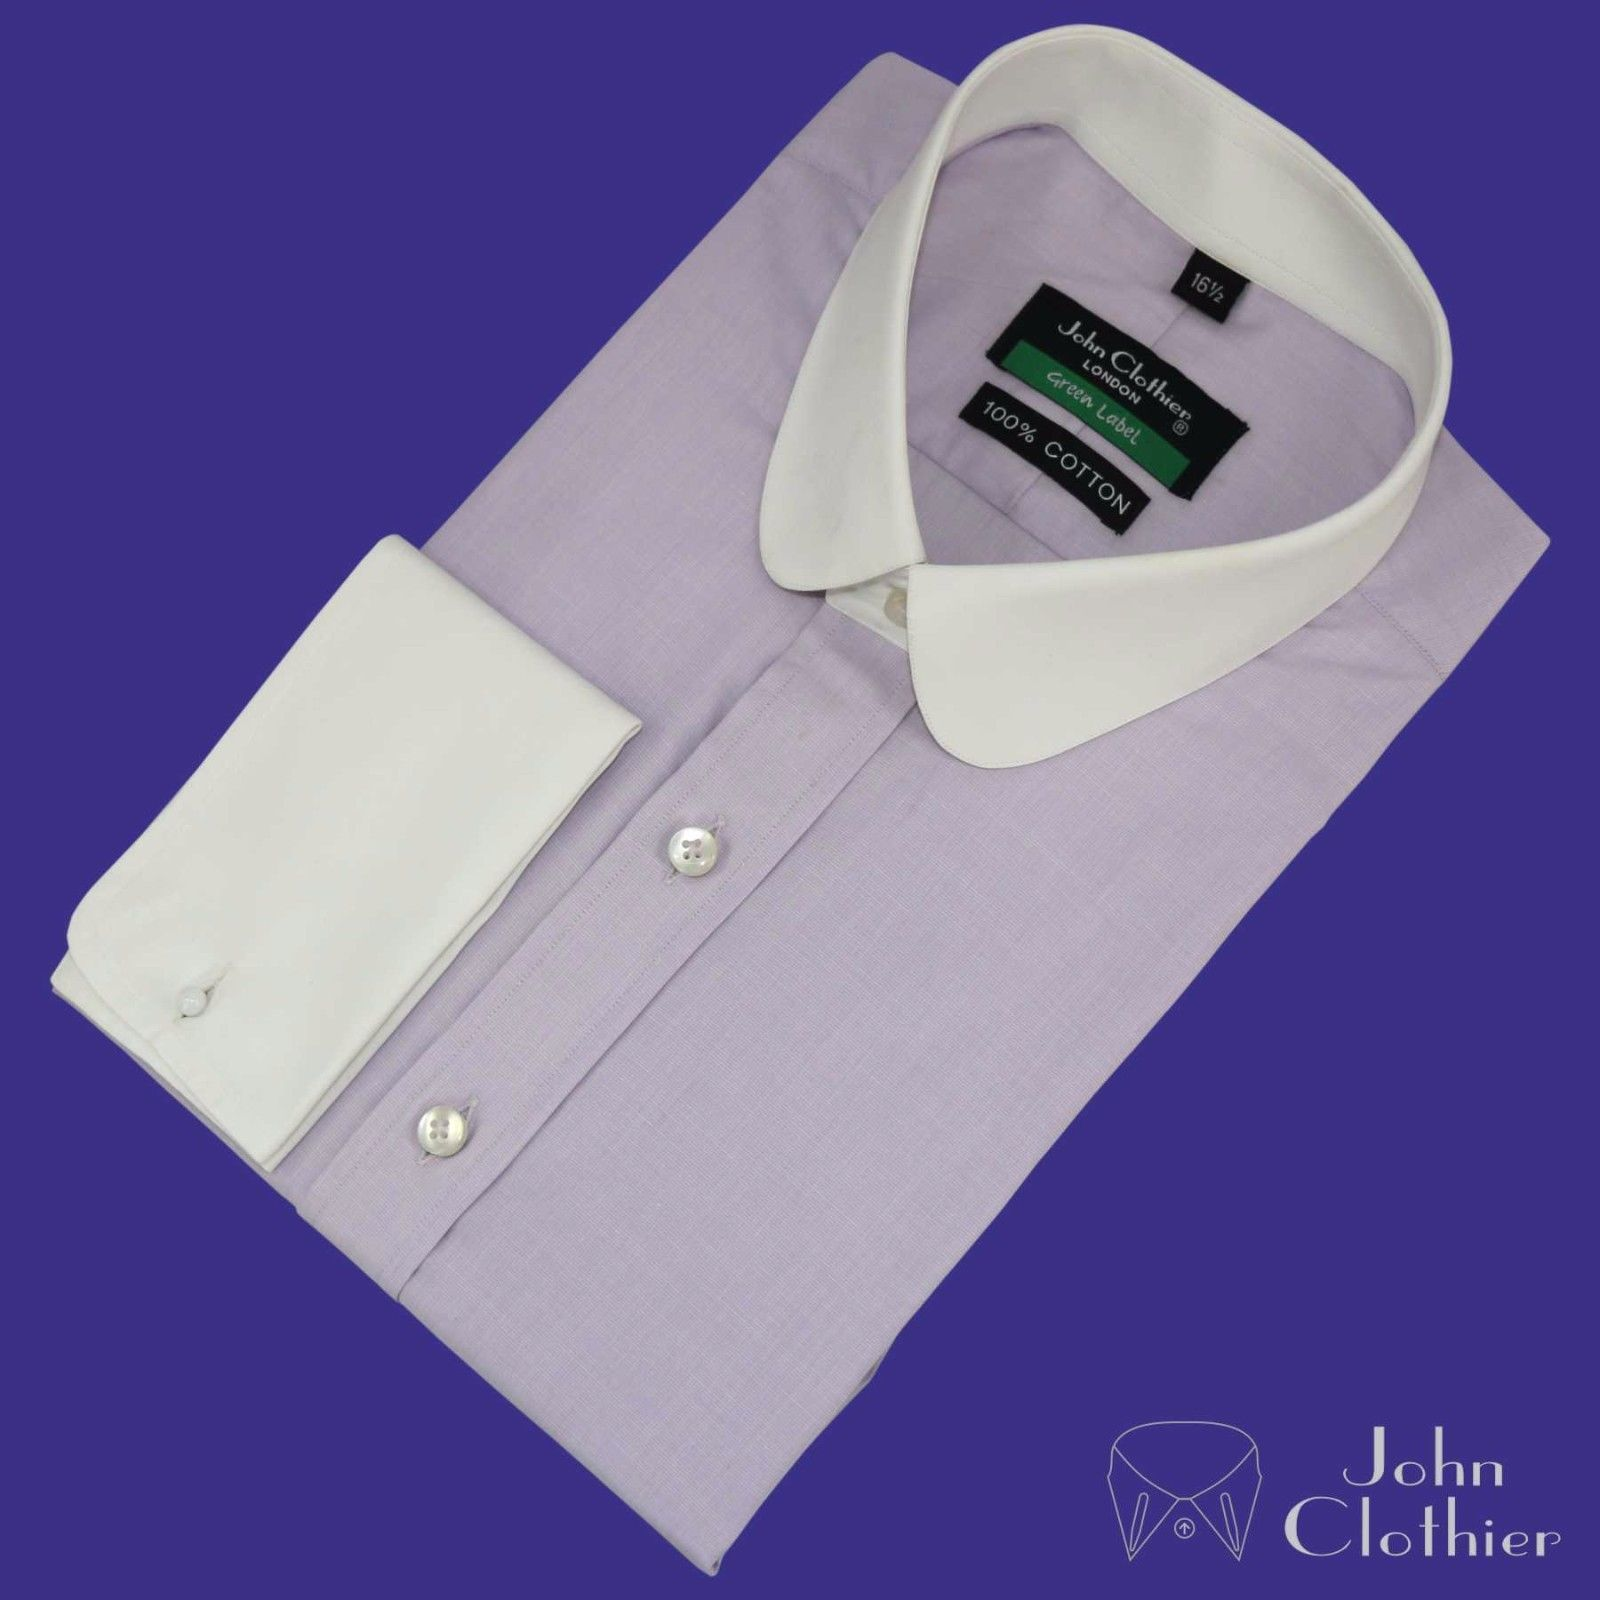 New Penny collar Banker shirt for Men Lilac Shamre Gents Office Round Club Gift Z0a6Awyi